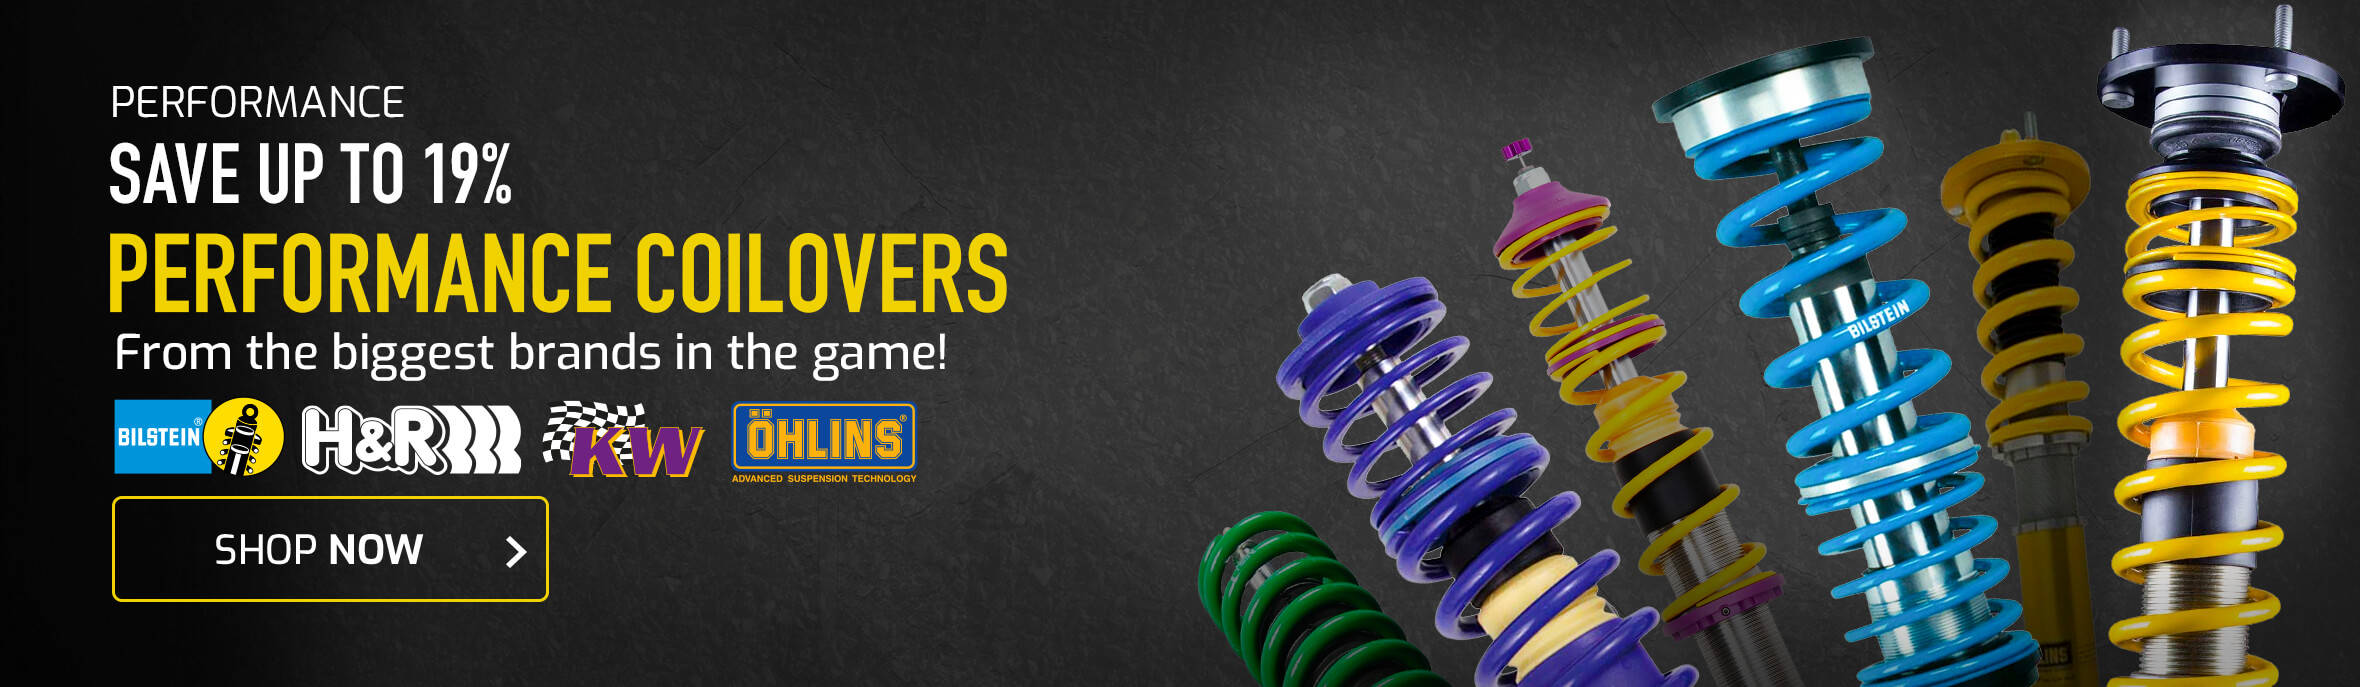 Save up to 19% on Performance Coilovers